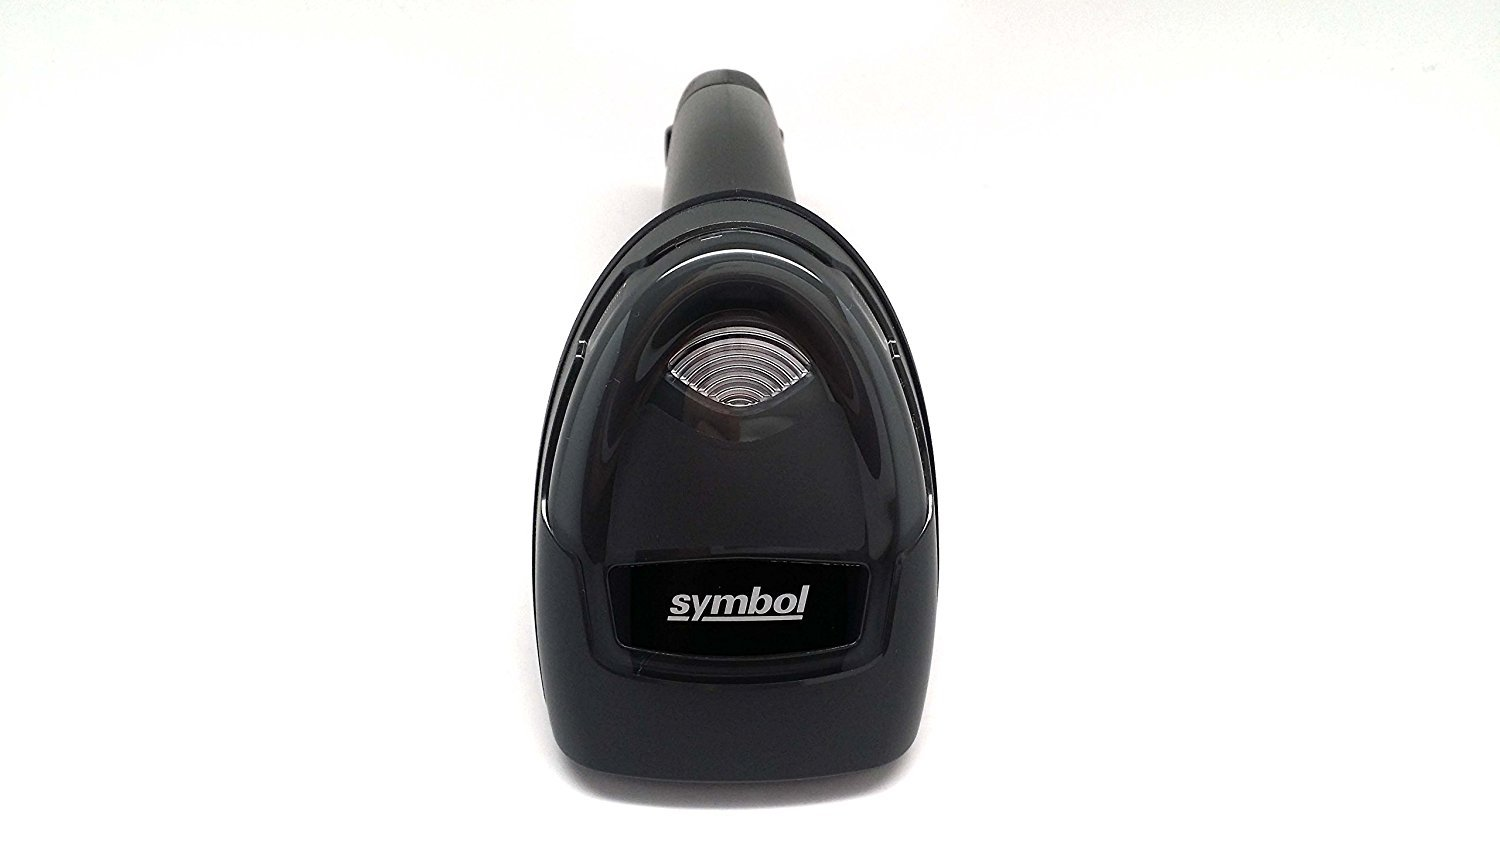 Barcode Scanner//Imager with USB Cable Motorola//Zebra Symbol DS4308-HD Handheld 2D Omnidirectional High Density HD